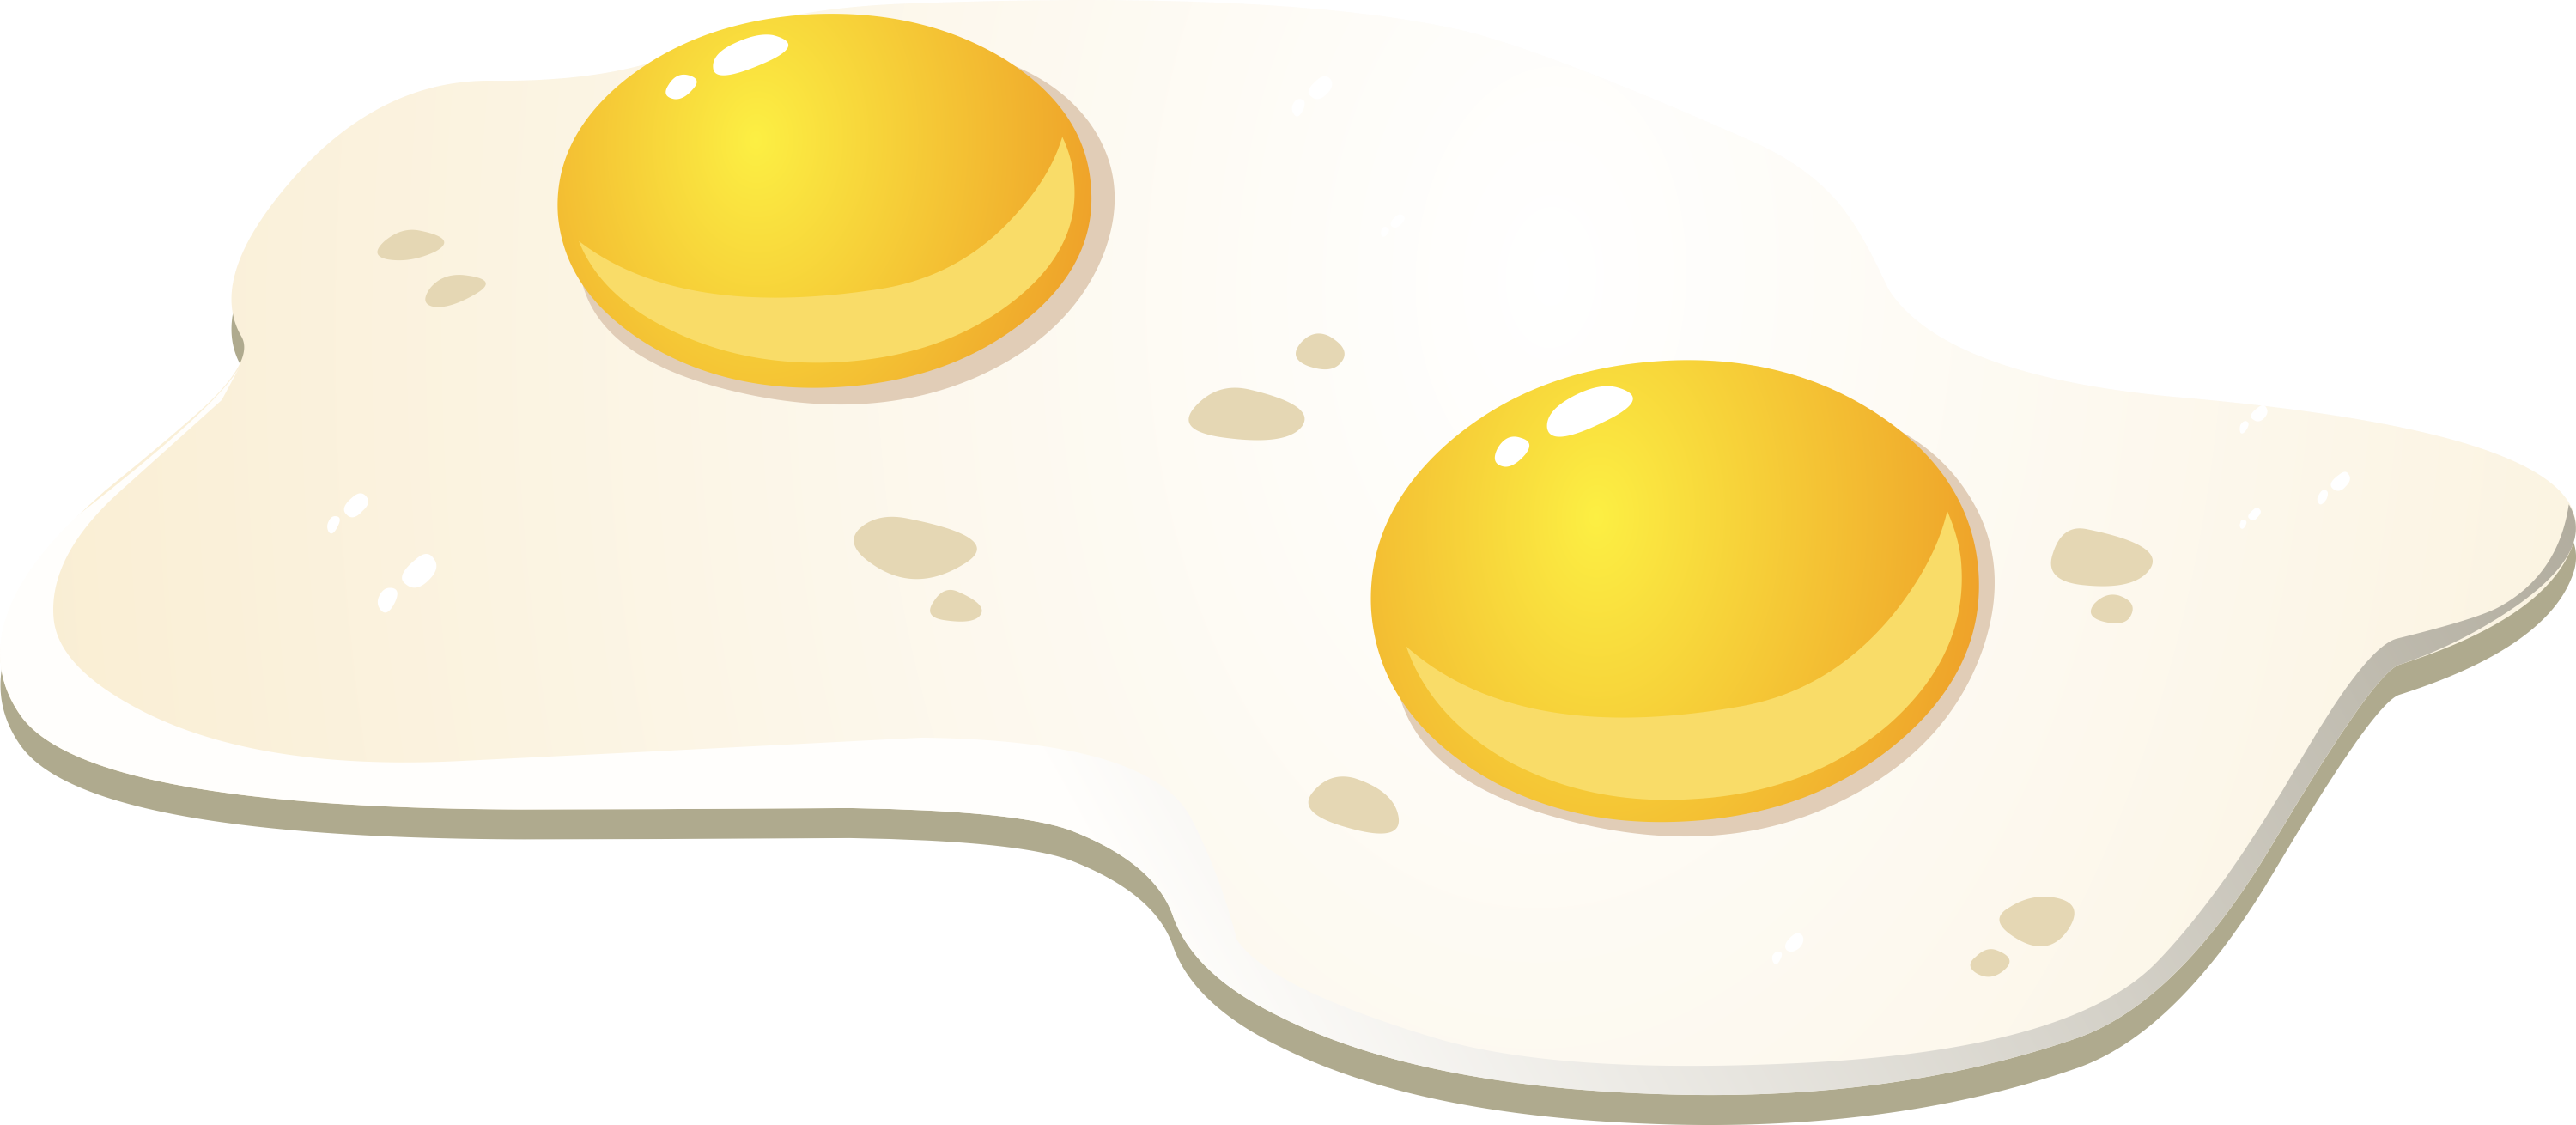 Fry Egg PNG - 66772